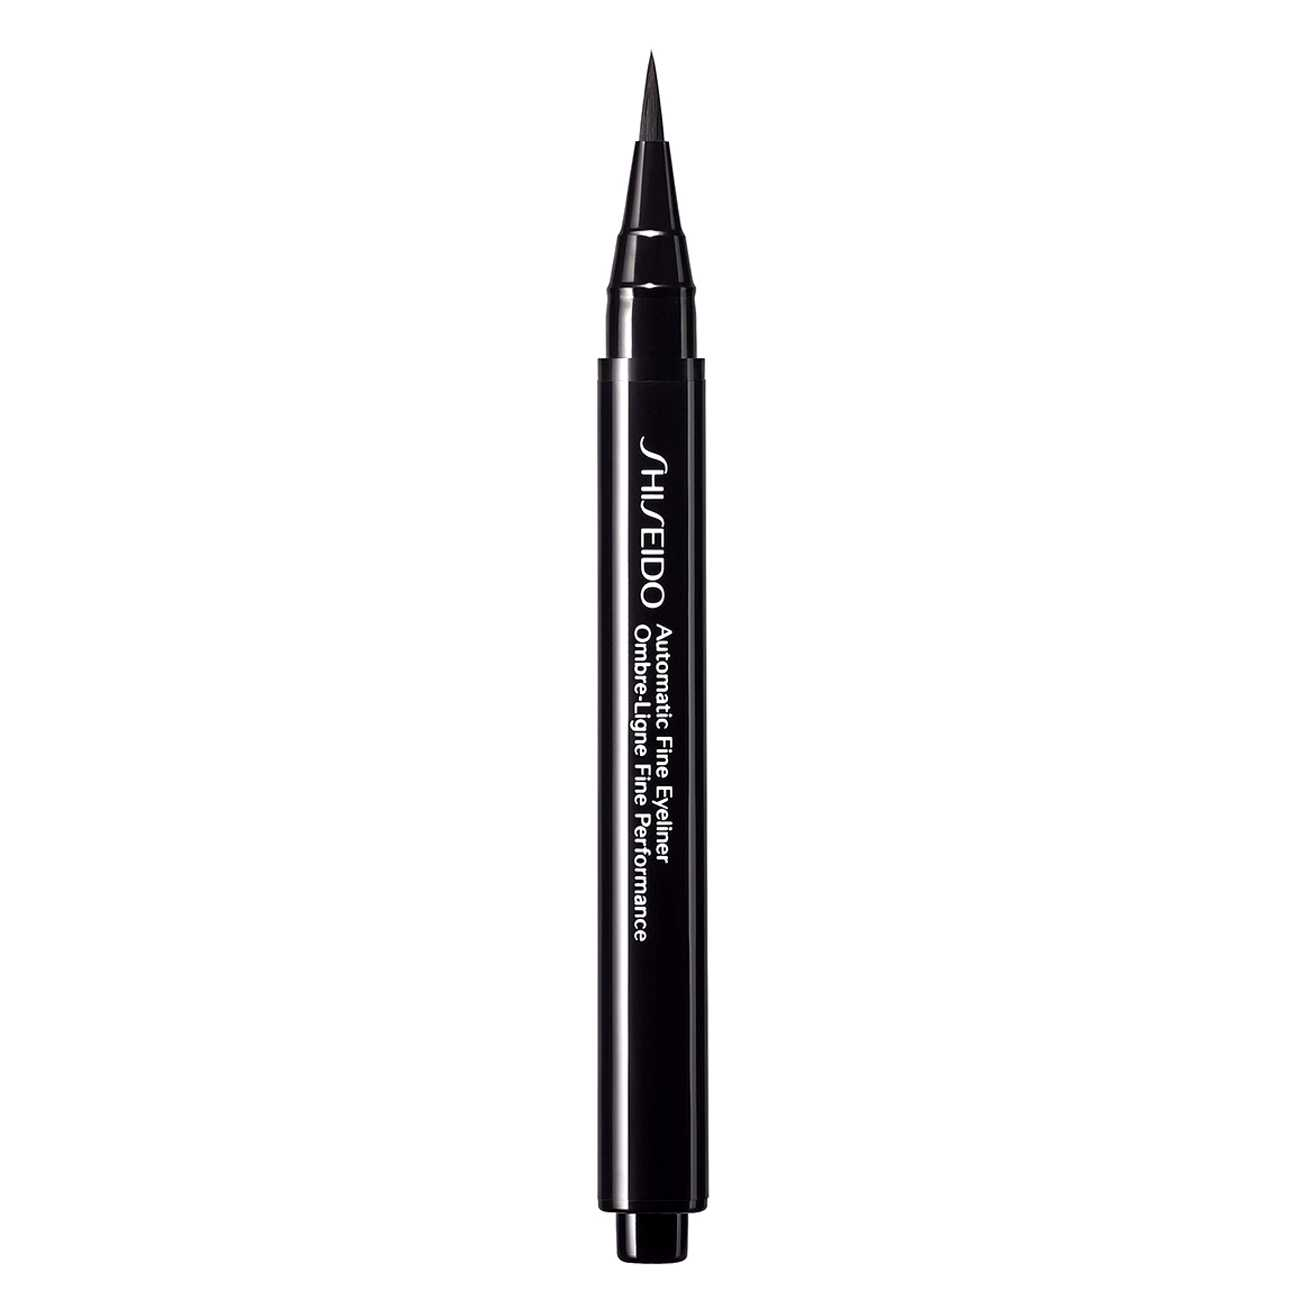 AUTOMATIC FINE EYELINER 1.4 ML Black Bk 901